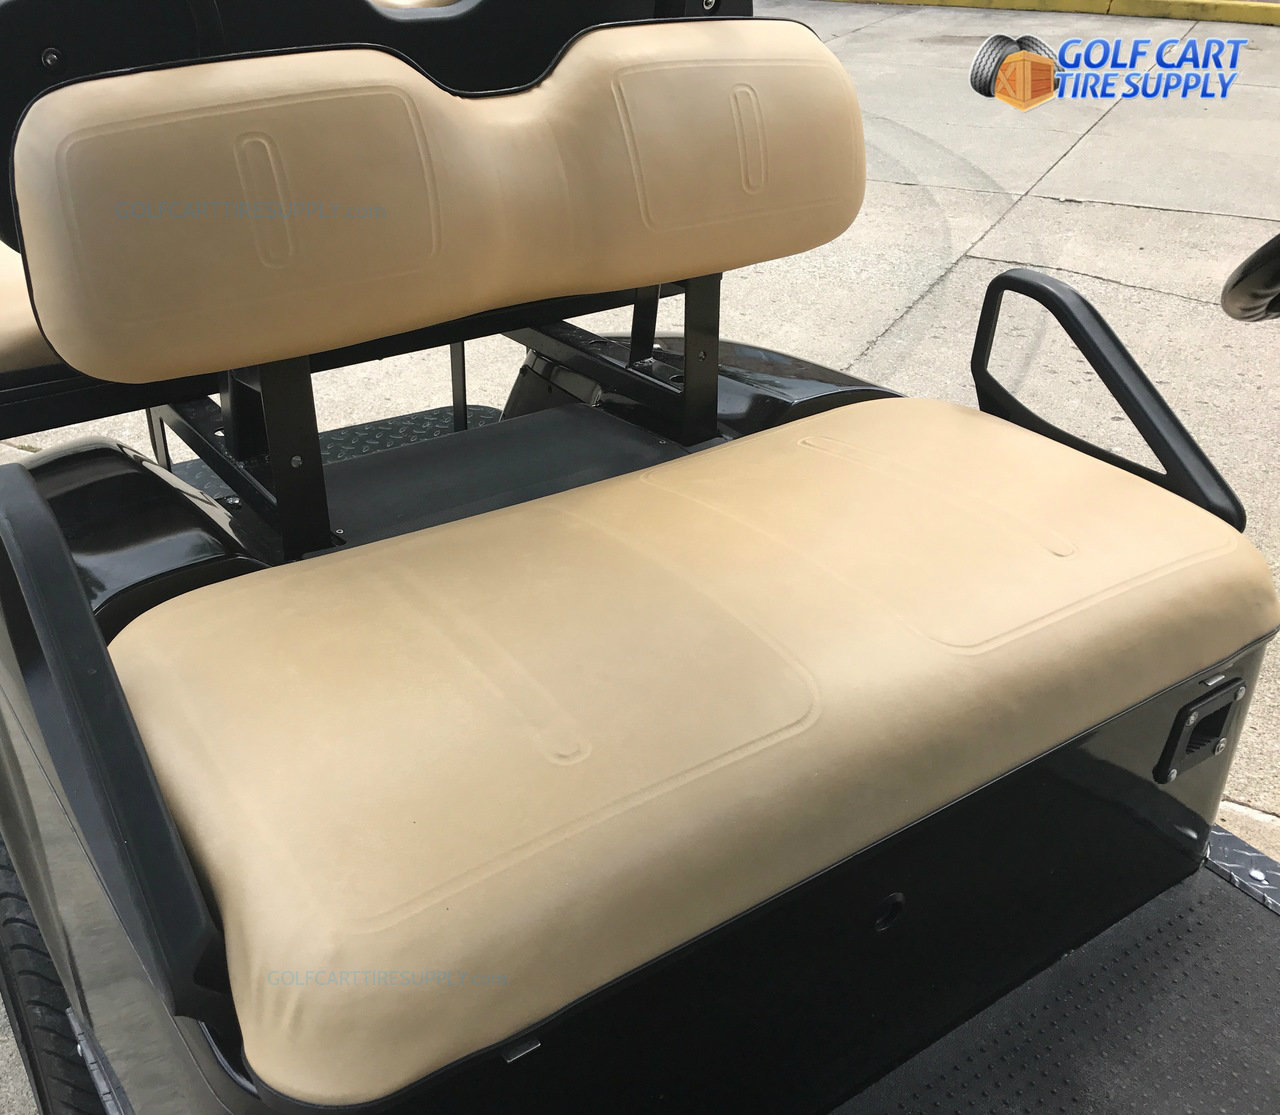 ezgo-txt-golf-cart-seat-cover-tan-front-back-01.jpg